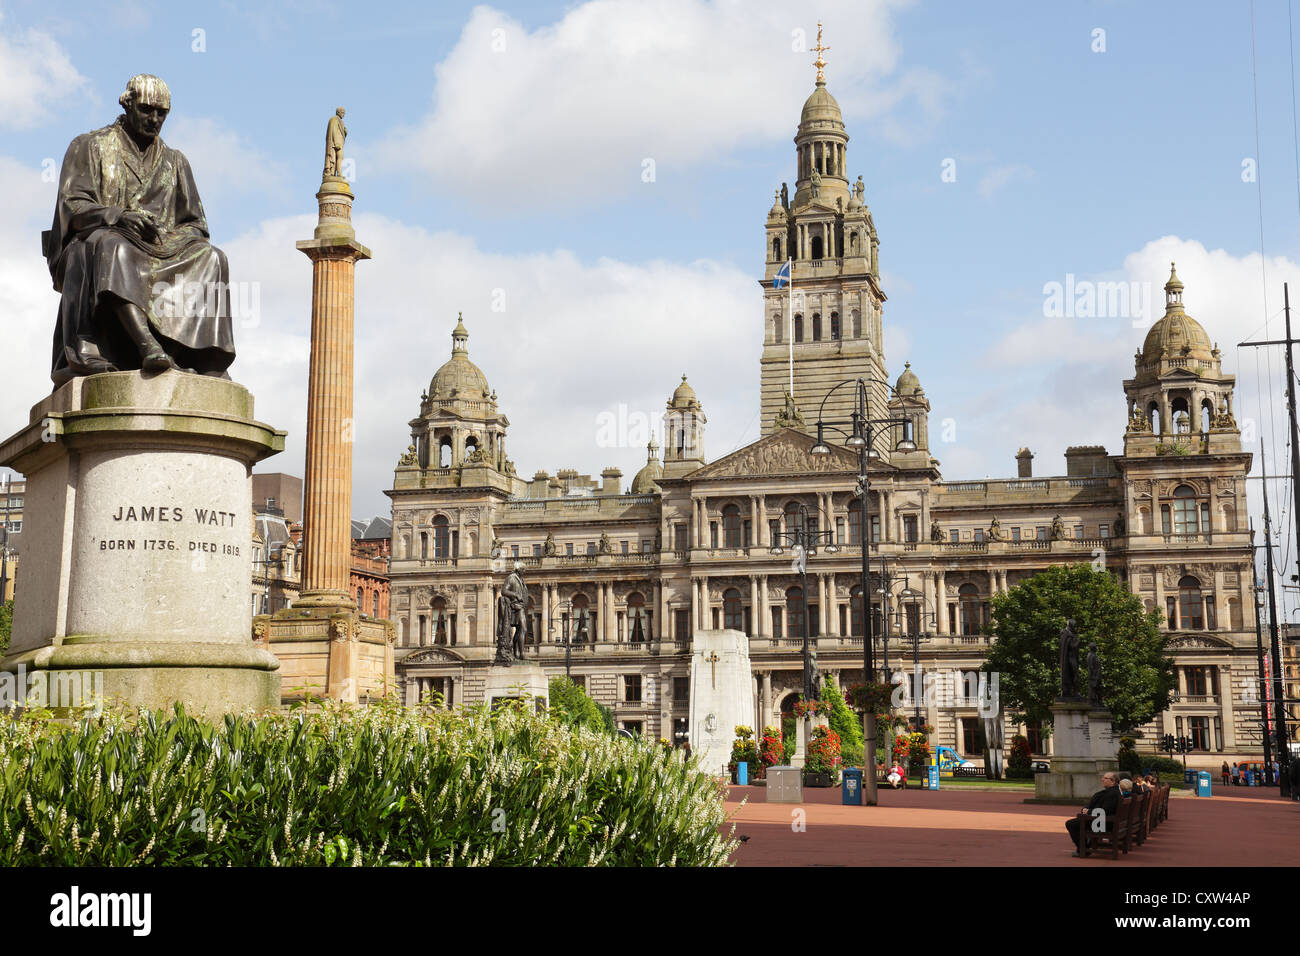 Looking East across George Square to the City Chambers in Glasgow City Centre, Scotland, UK - Stock Image